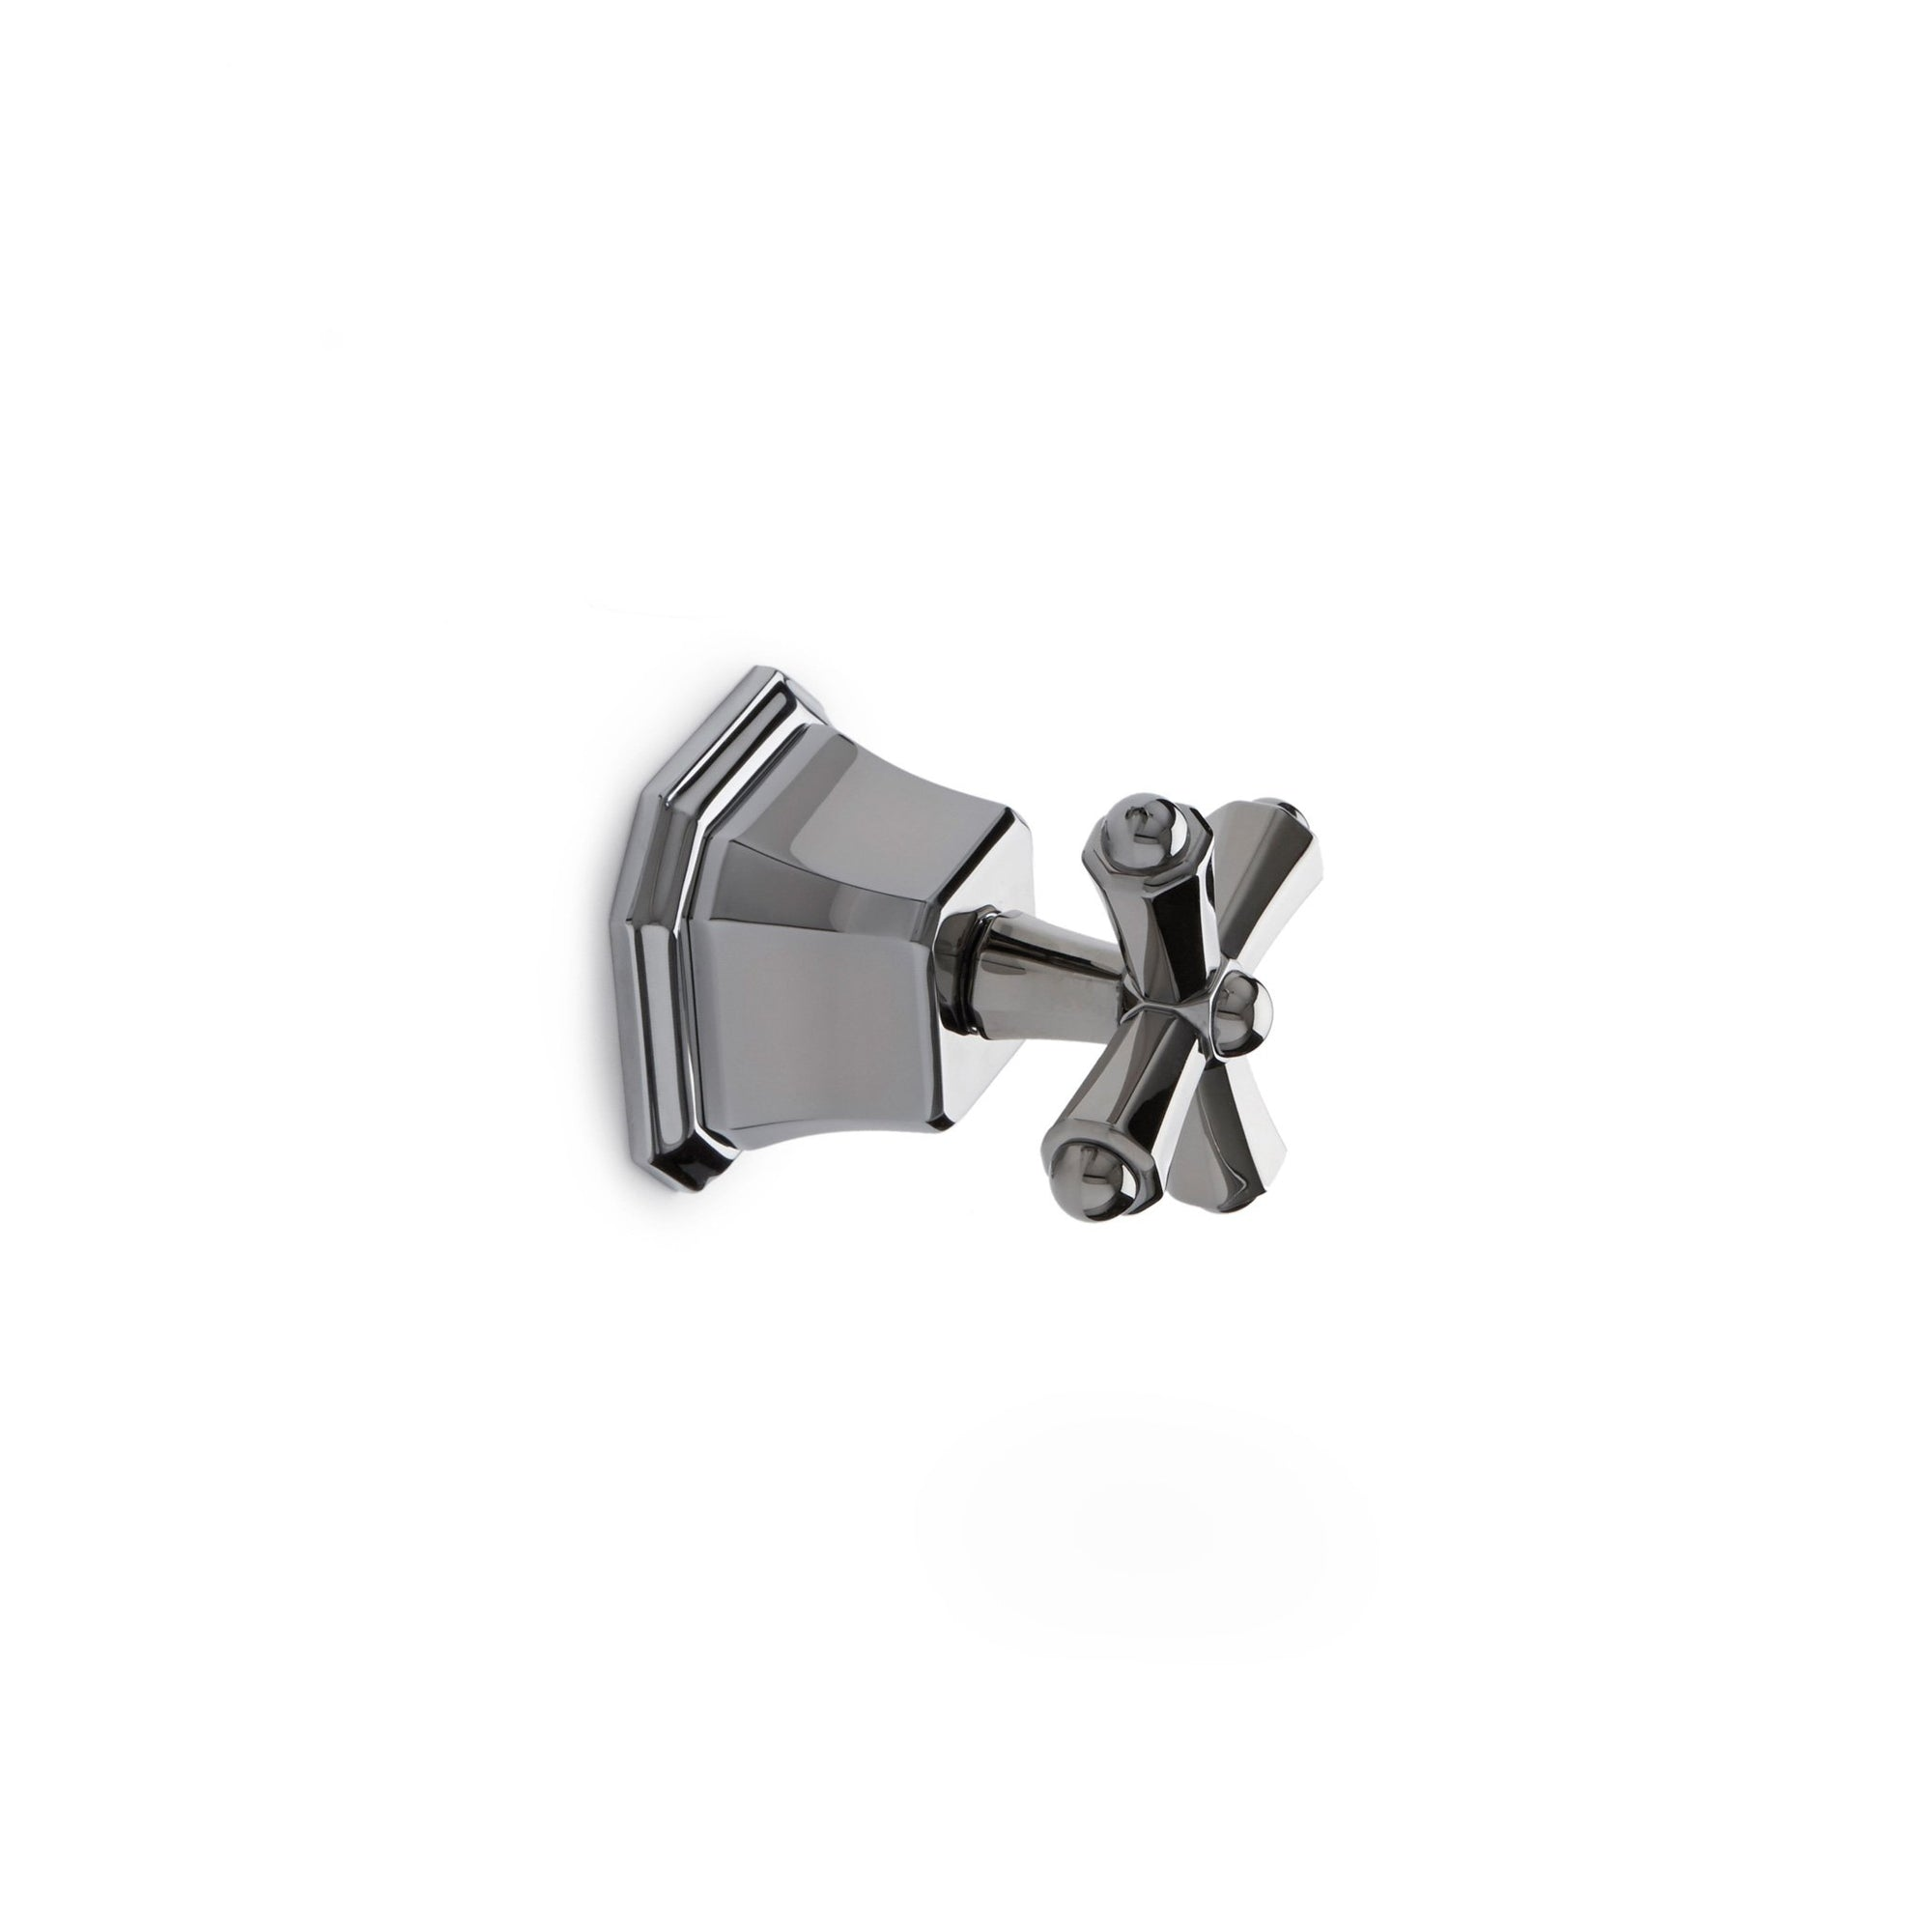 0981KB-ESC-CP Sherle Wagner International Harrison Cross Handle Volume Control and Diverter Trim in Polished Chrome metal finish